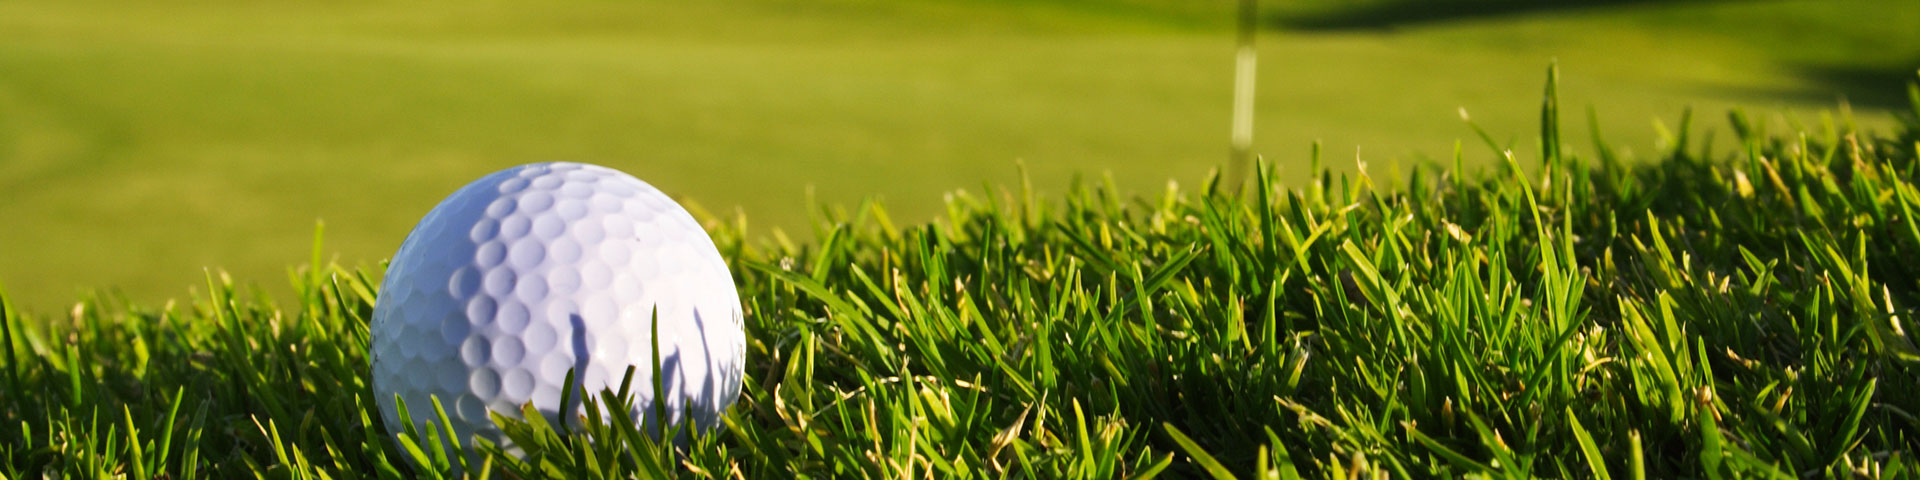 A golf ball sits in grass